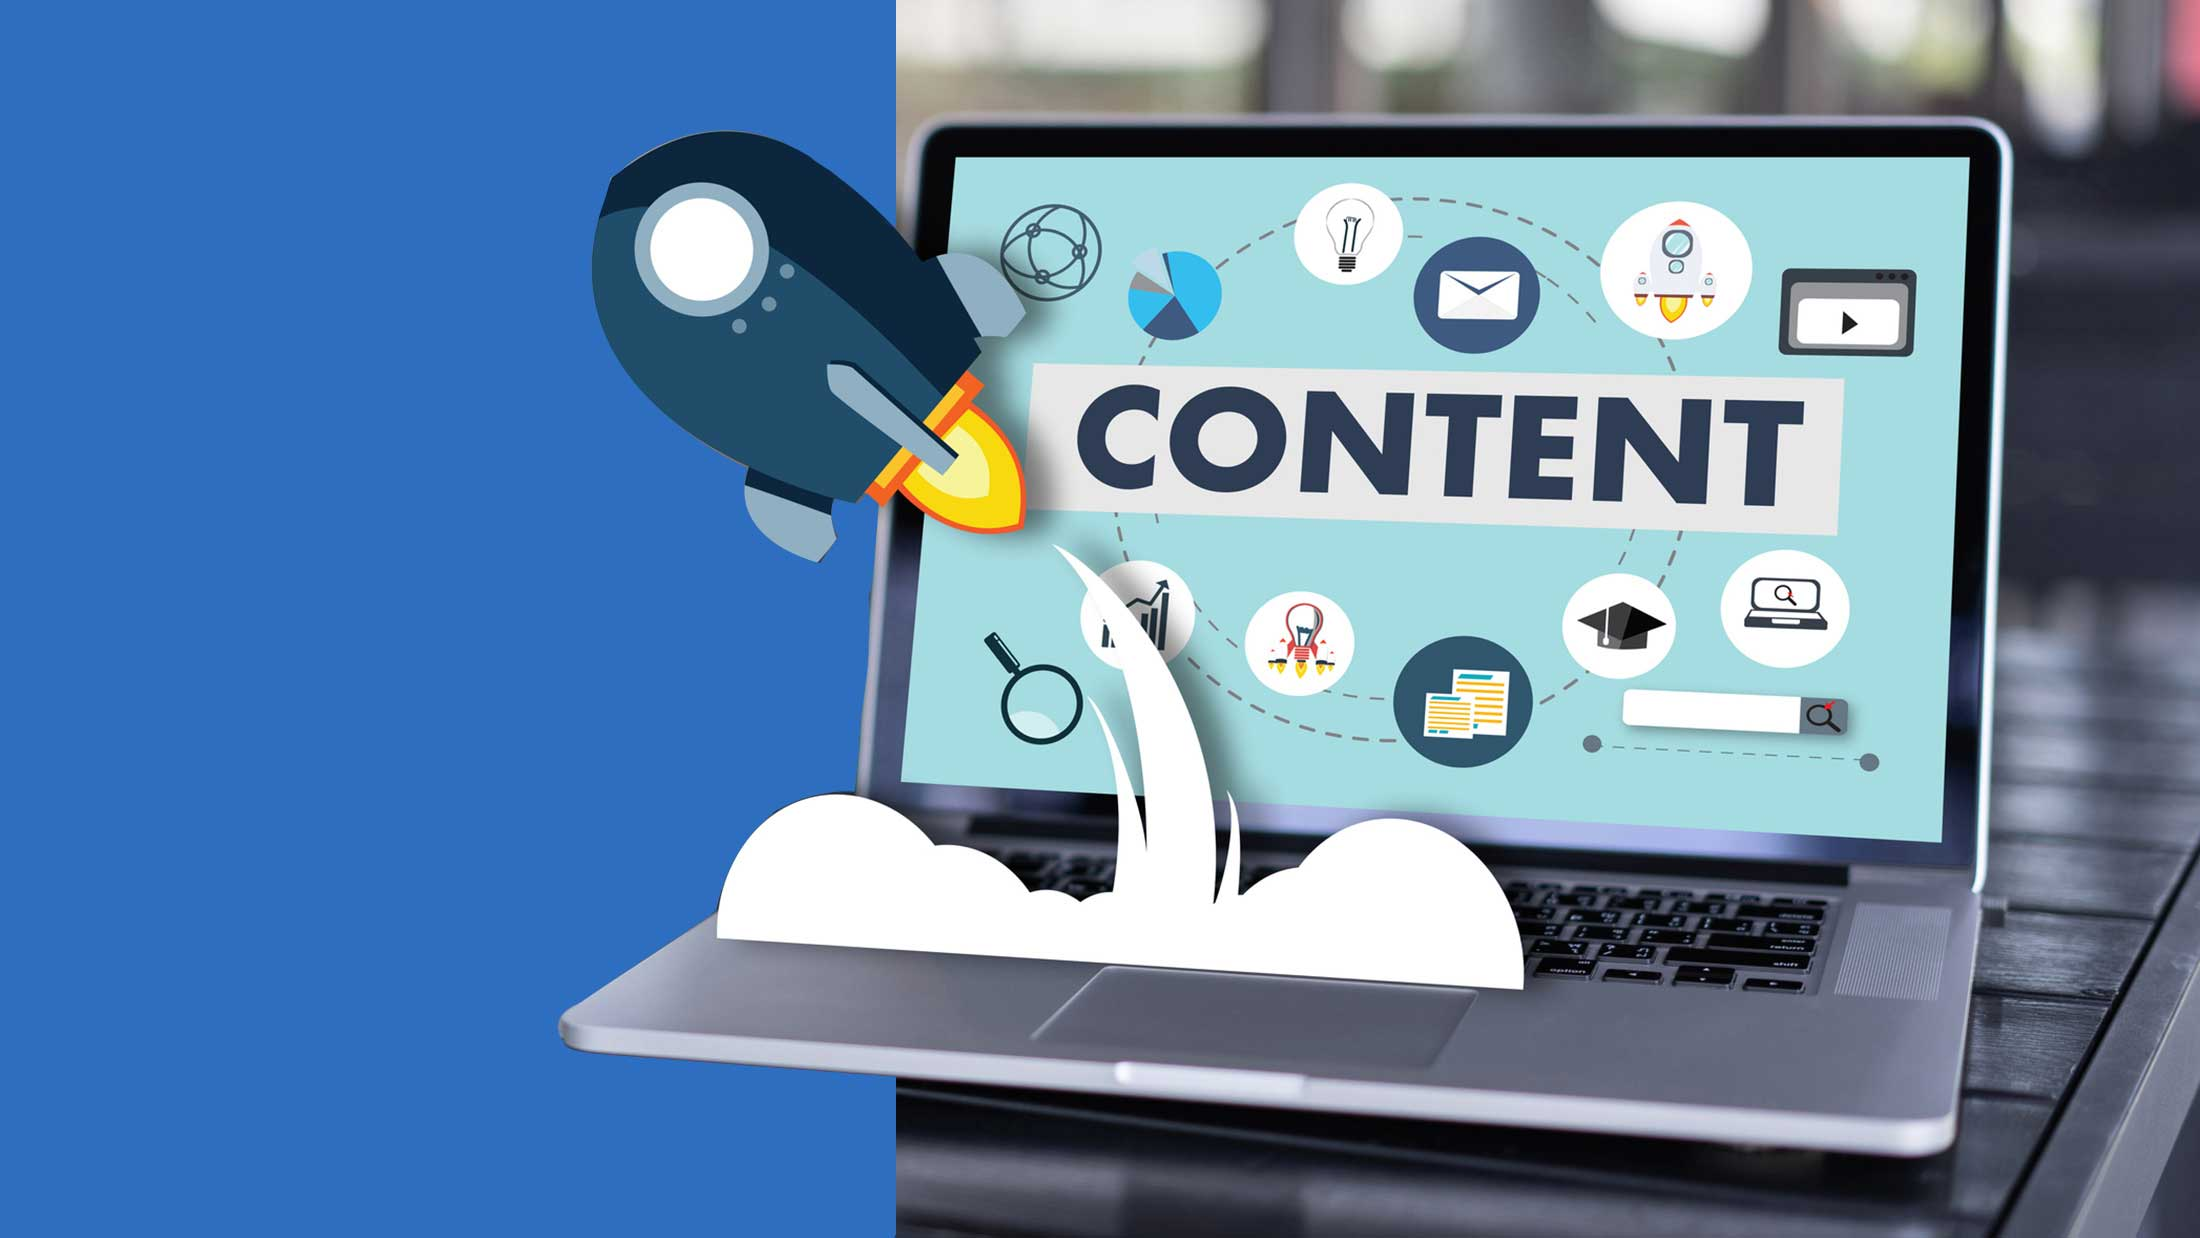 How to Create a Content Strategy Your Audience Wants